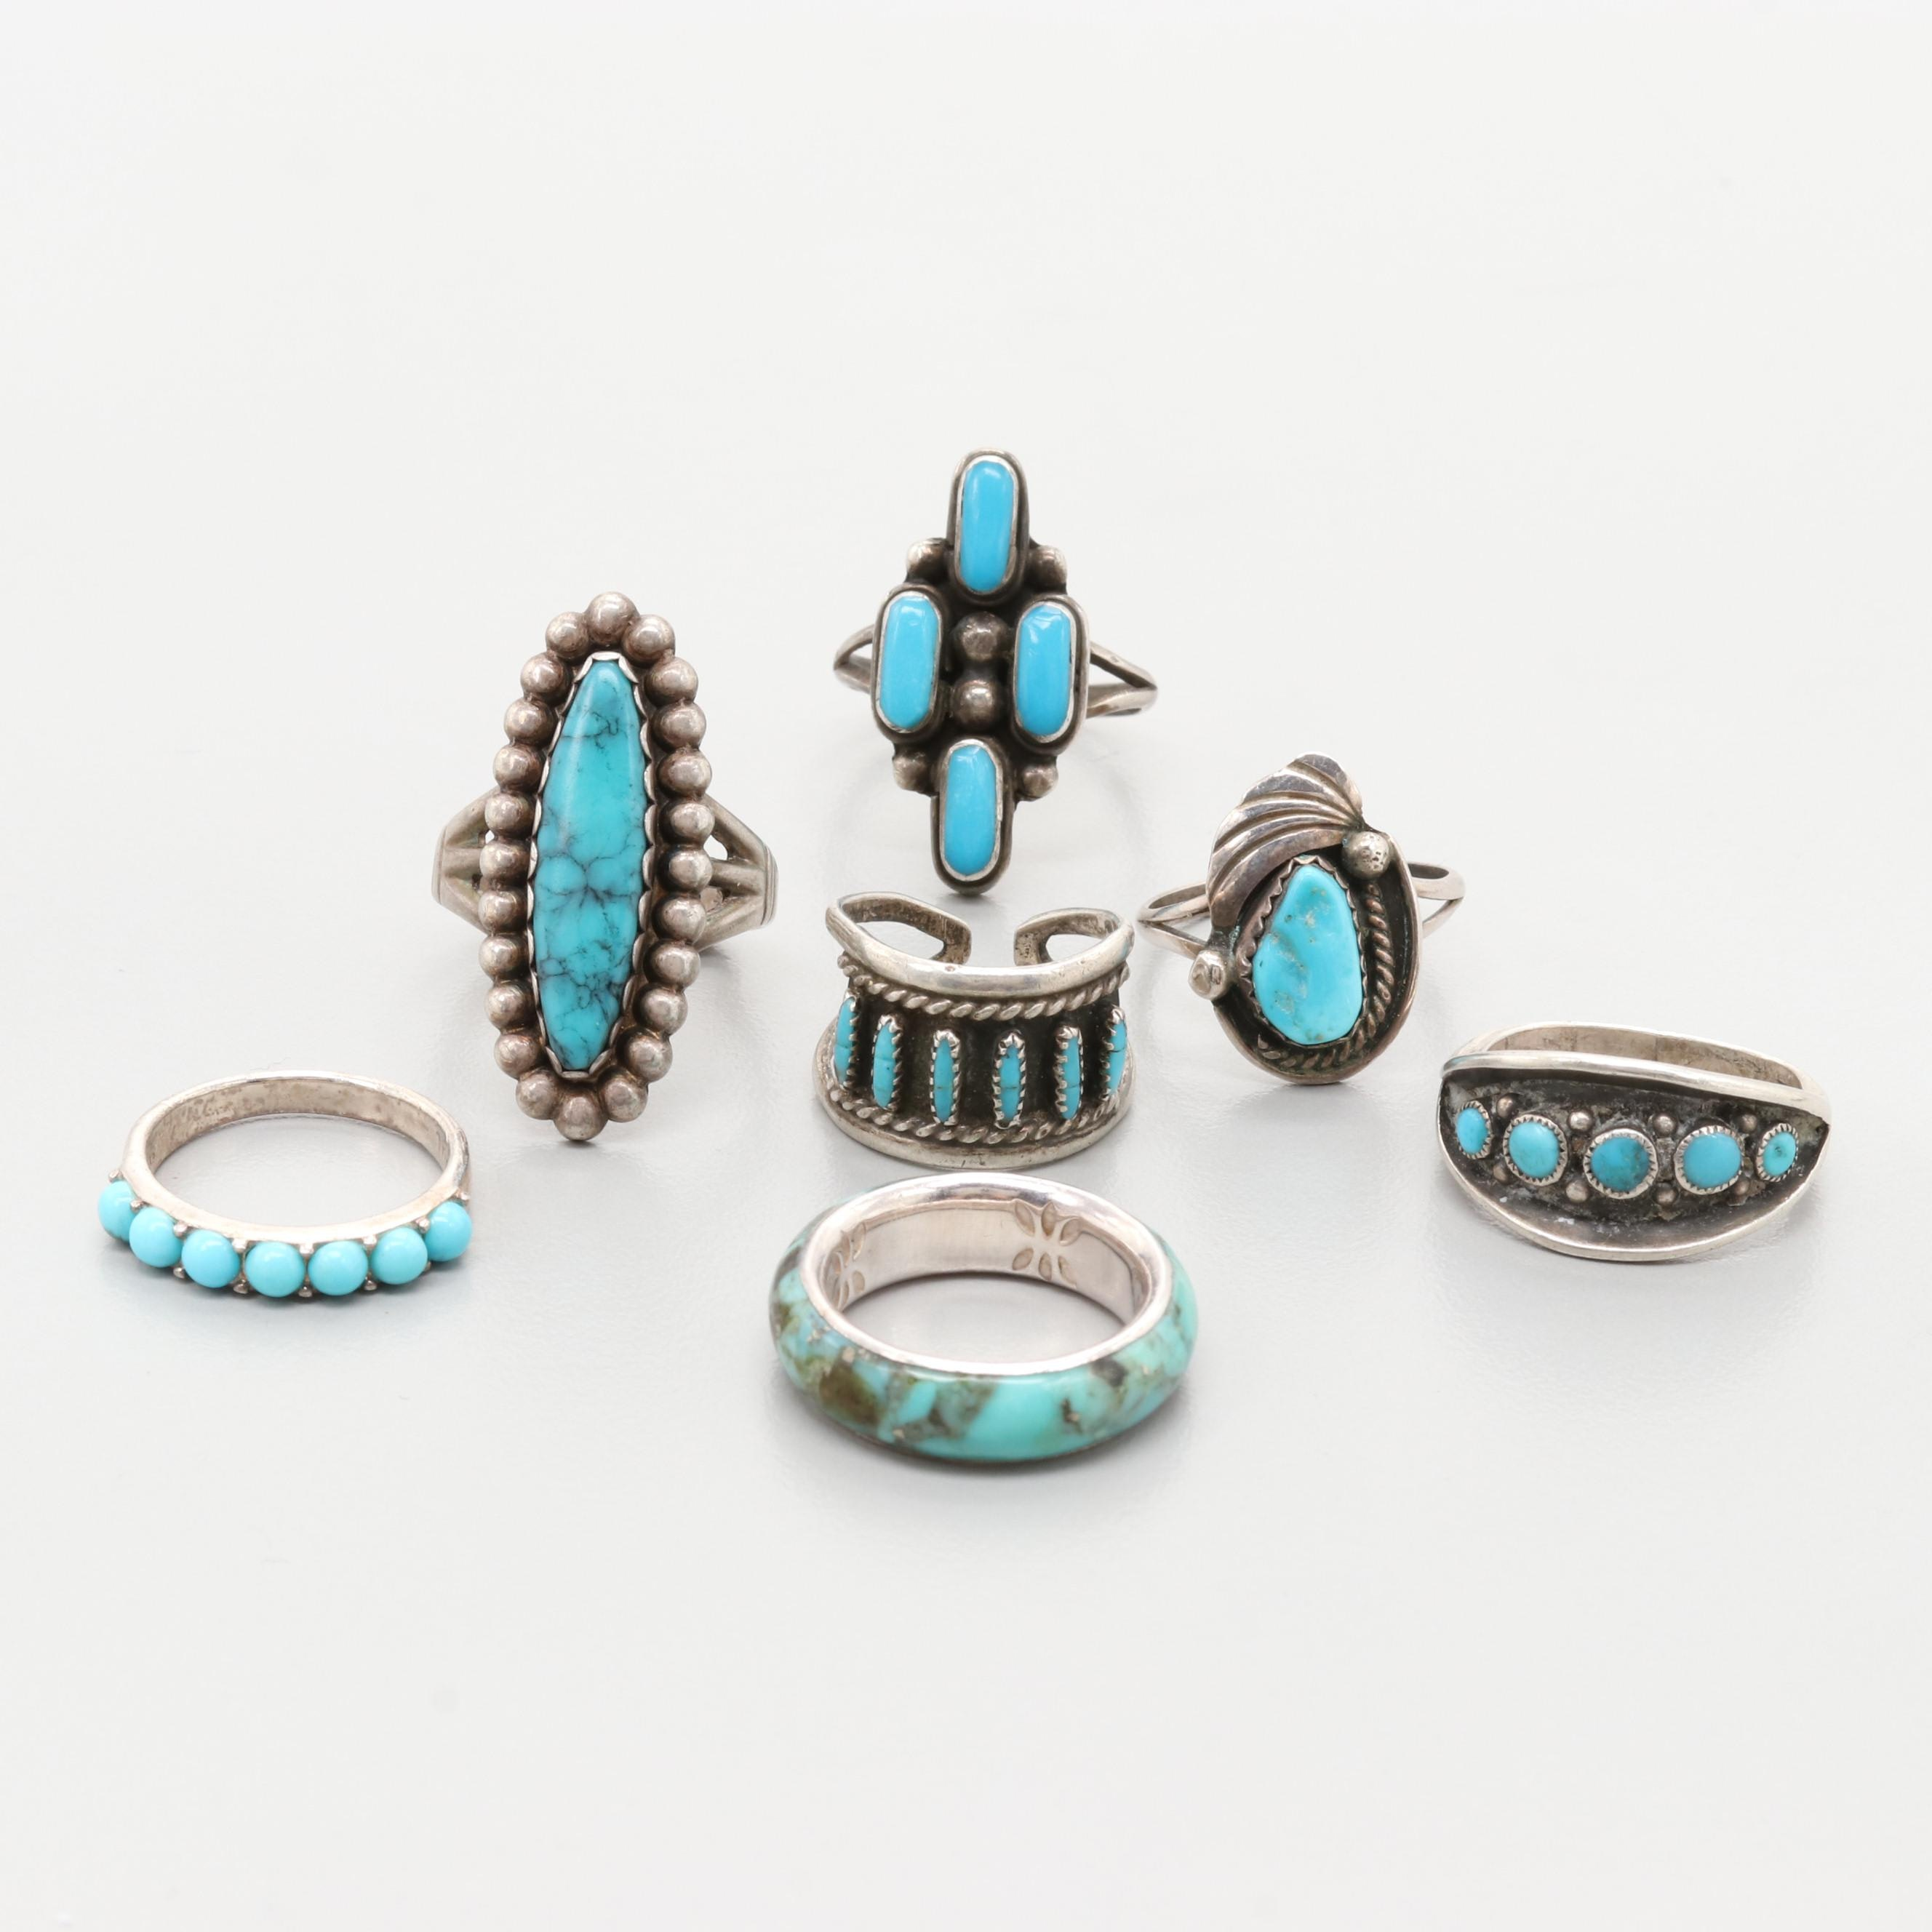 Sterling Turquoise and Imitation Stone Rings Including Justin Morris Navajo Diné